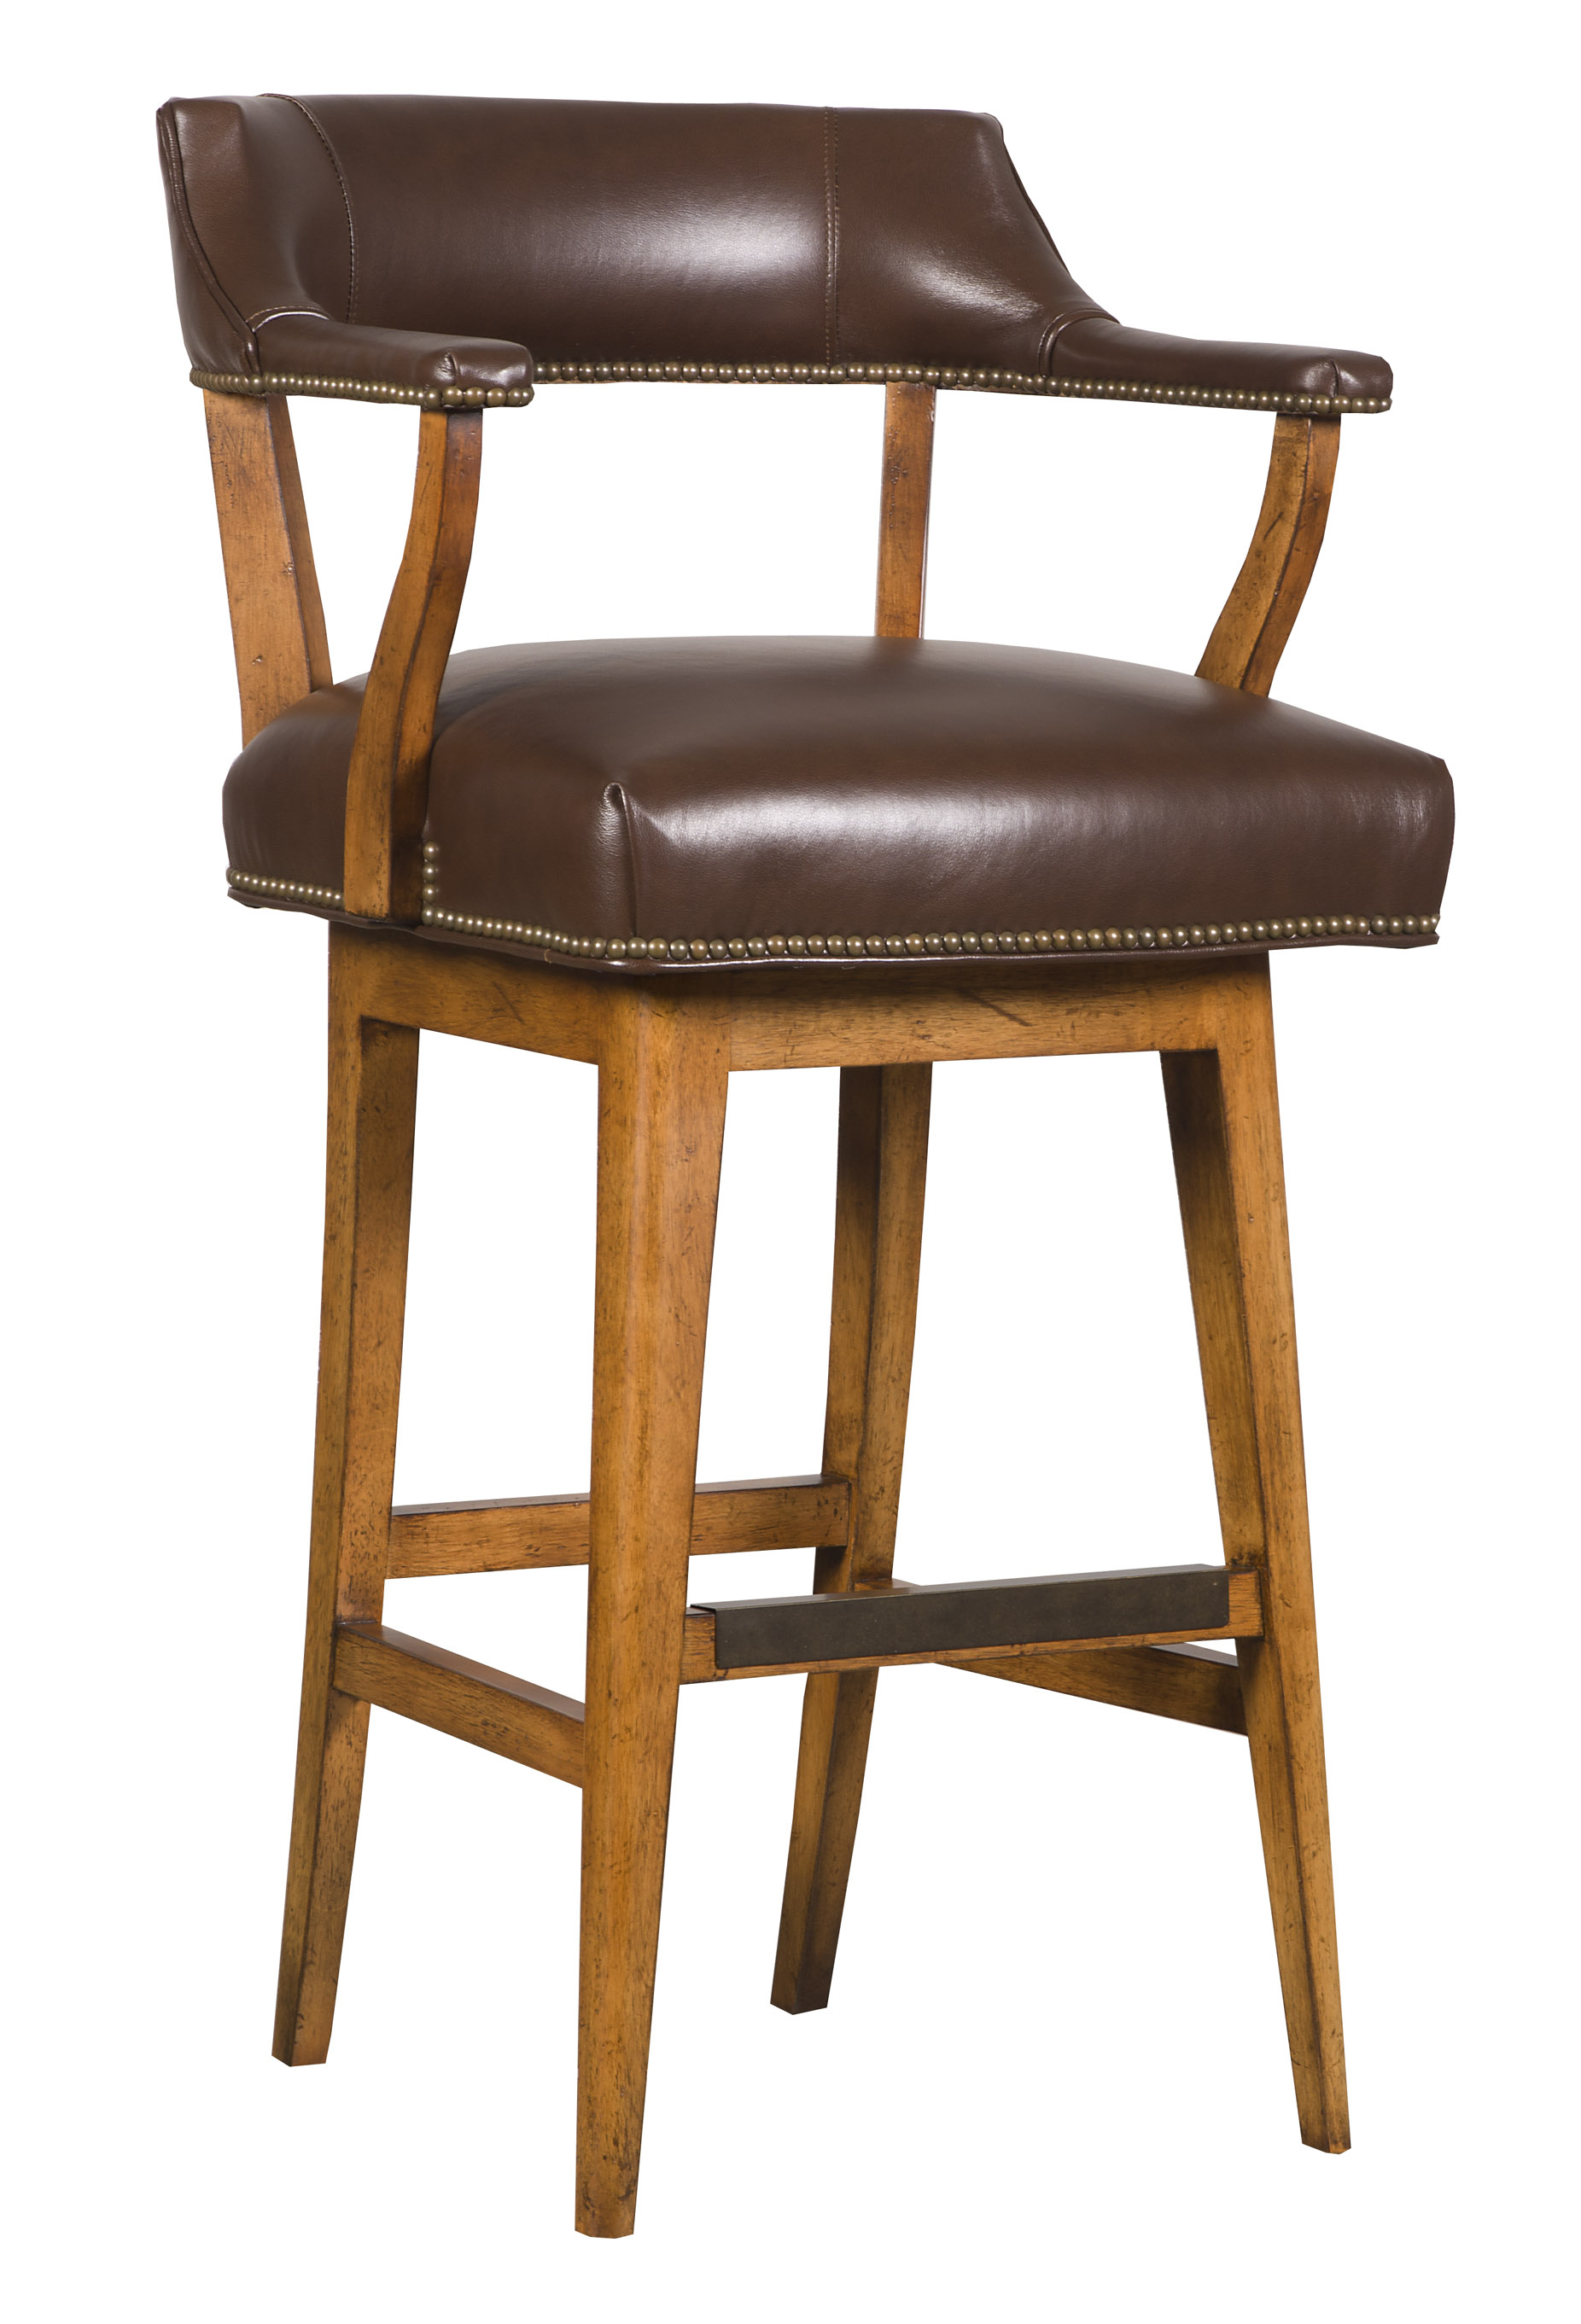 Captains Bar Stool L64 Bs Our Products Vanguard Furniture